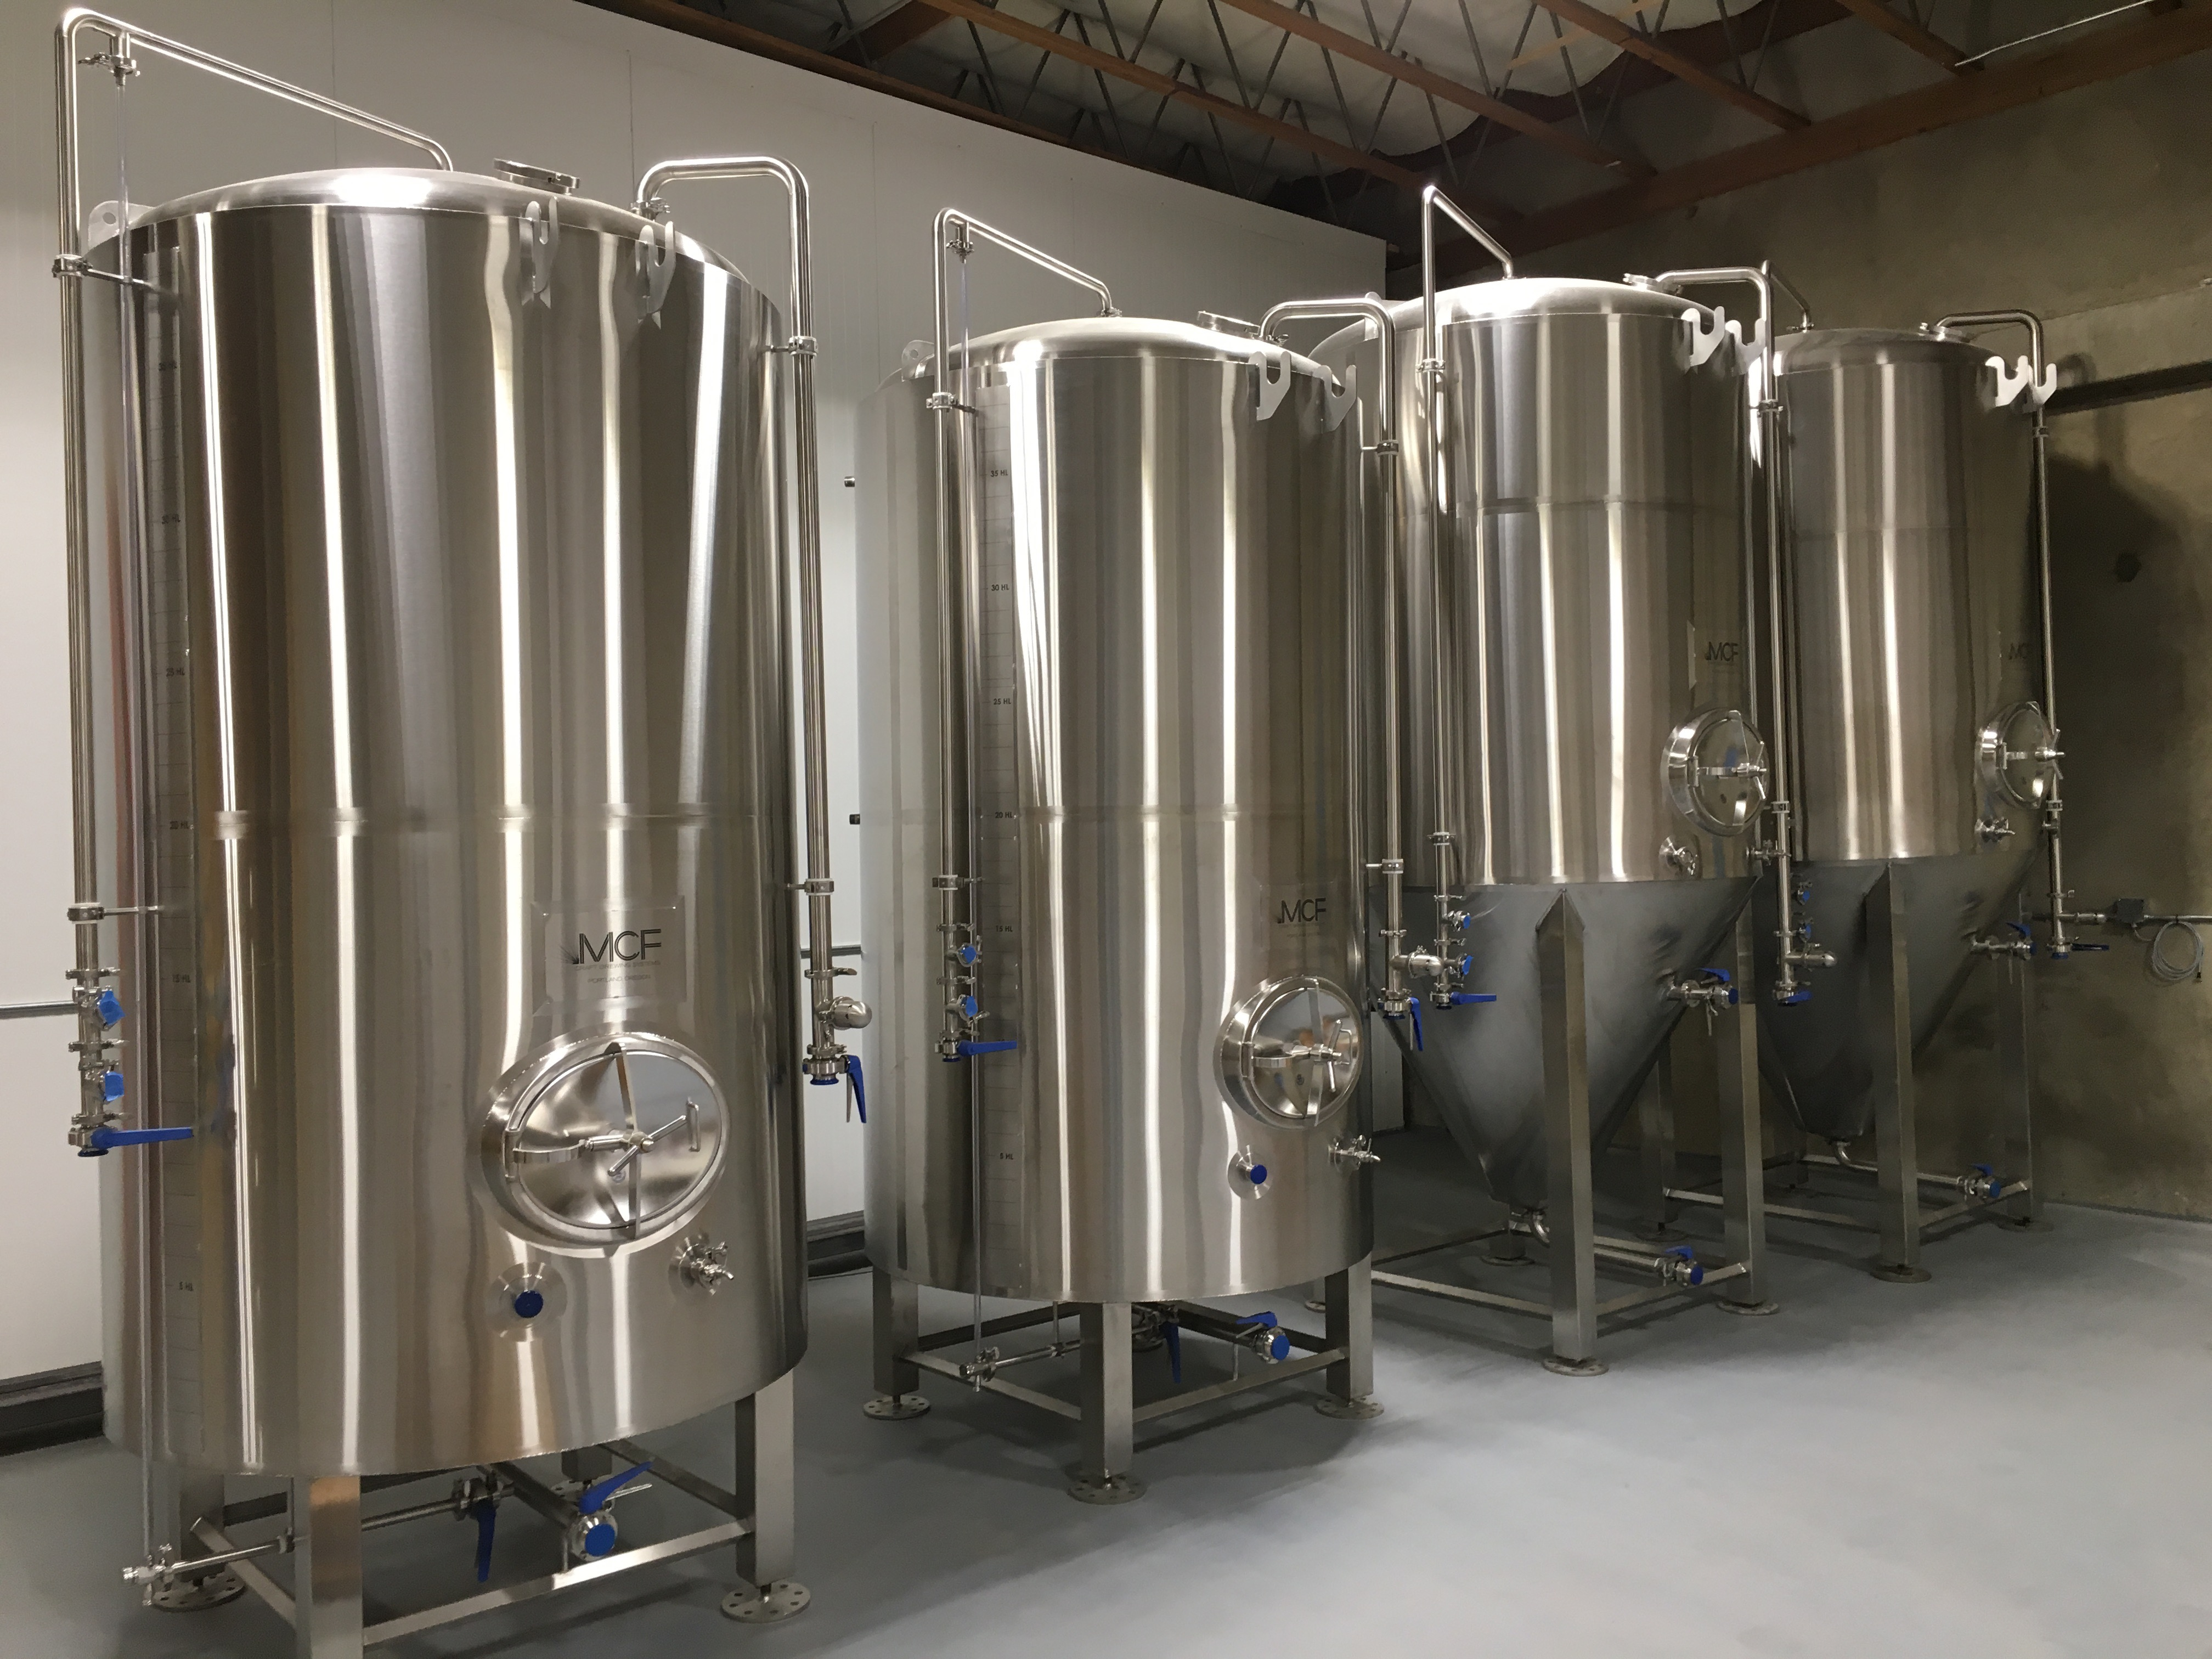 New fermentors from Metal Craft wait to hold cider at the new production facility at 807 NE Couch.